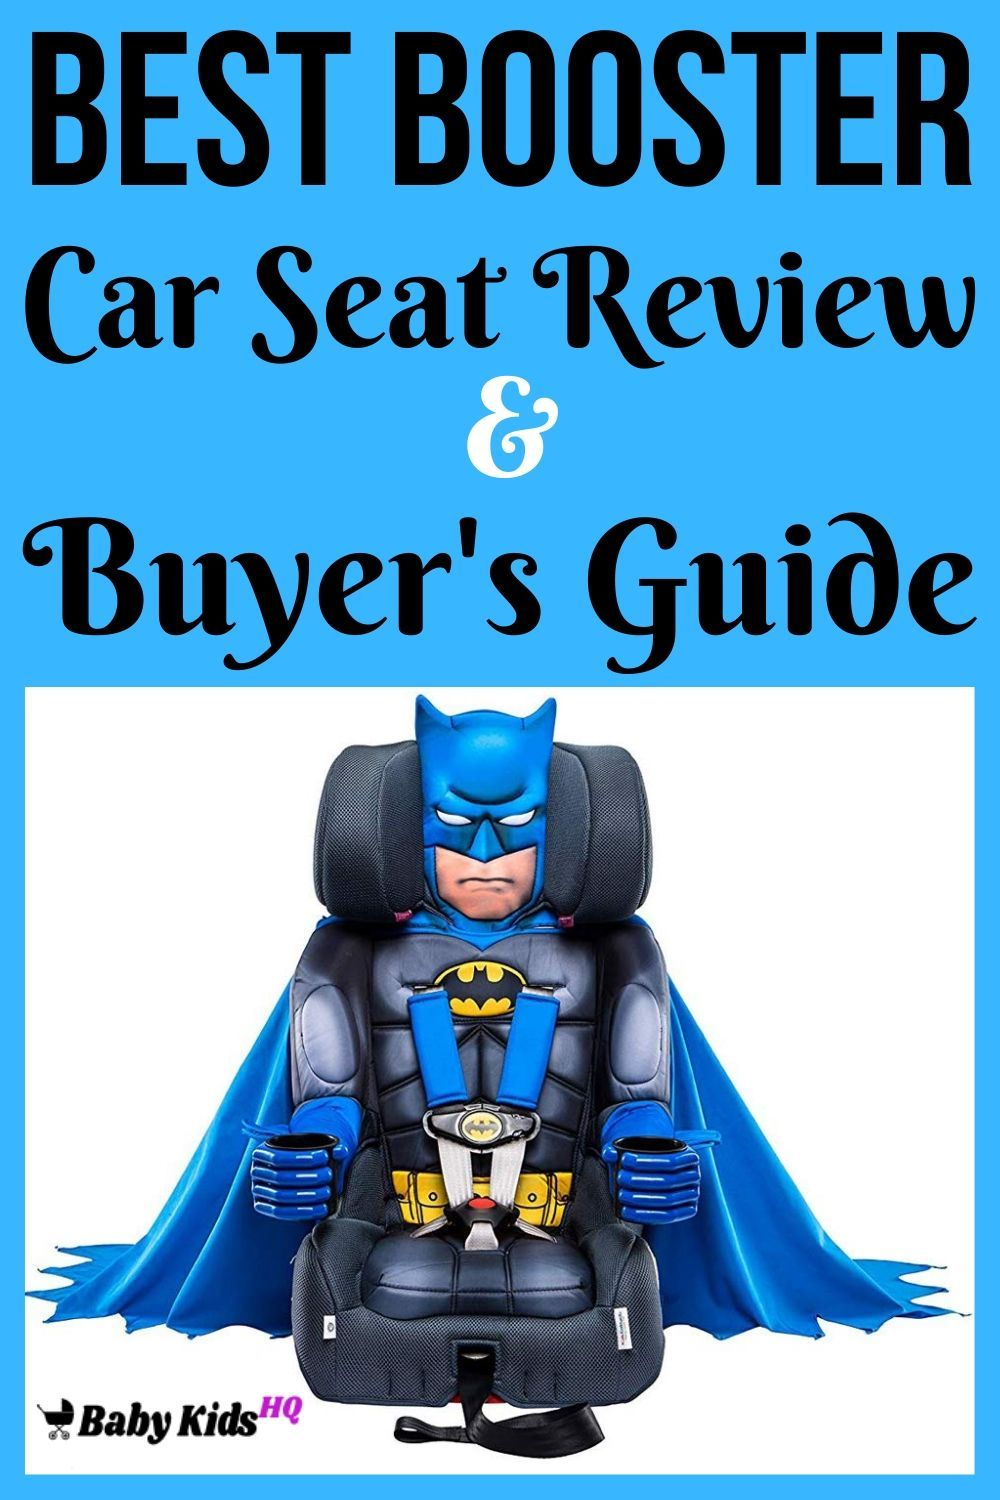 Best Booster Car Seat Review And Buyer's Guide. 2020